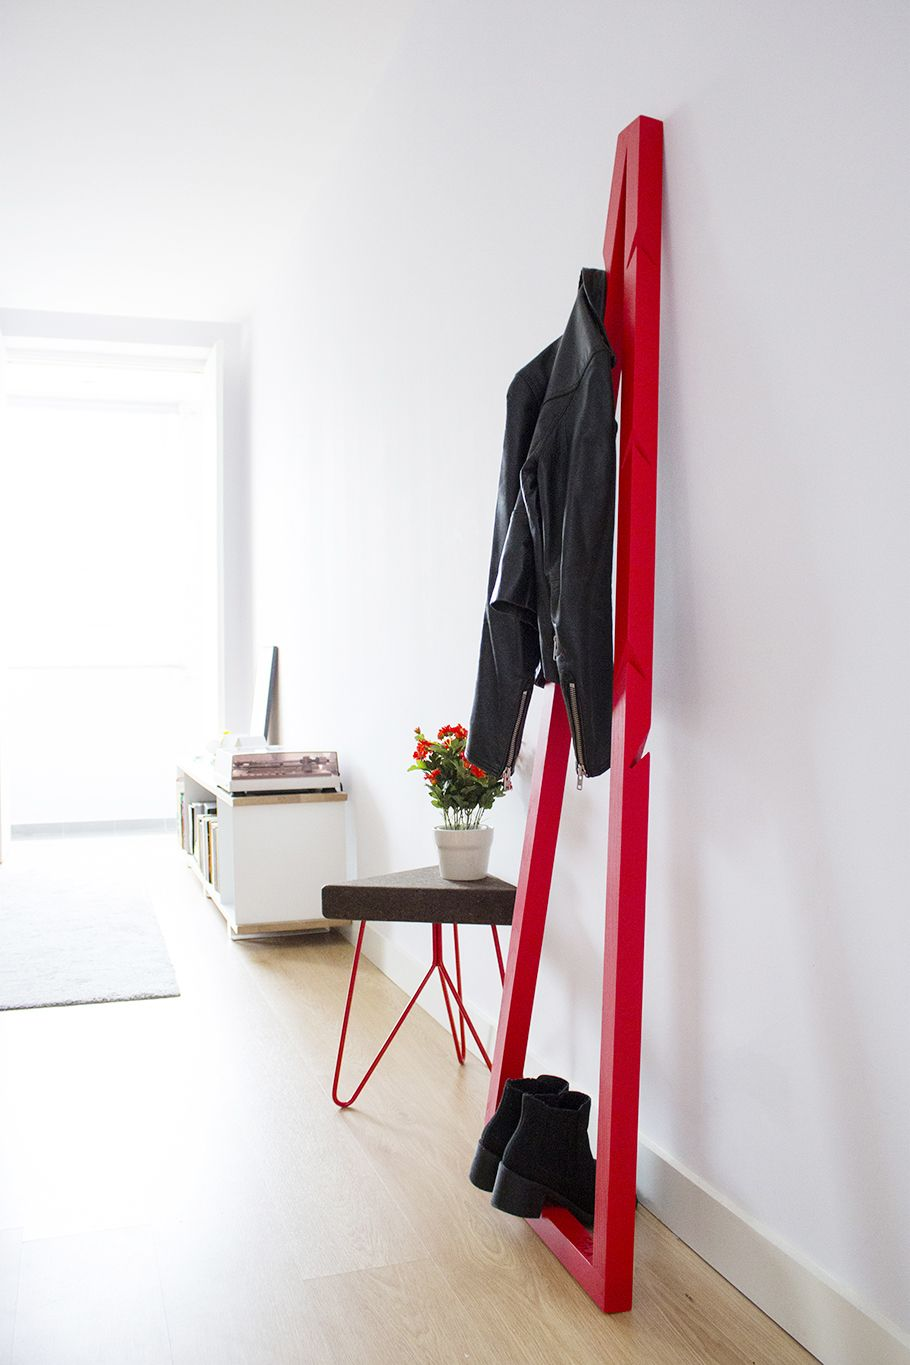 'Pendura' coat stand, minimalistic design - solid wood - and 'Três' stool - dark cork and red legs.  mendes'macedo for Galula